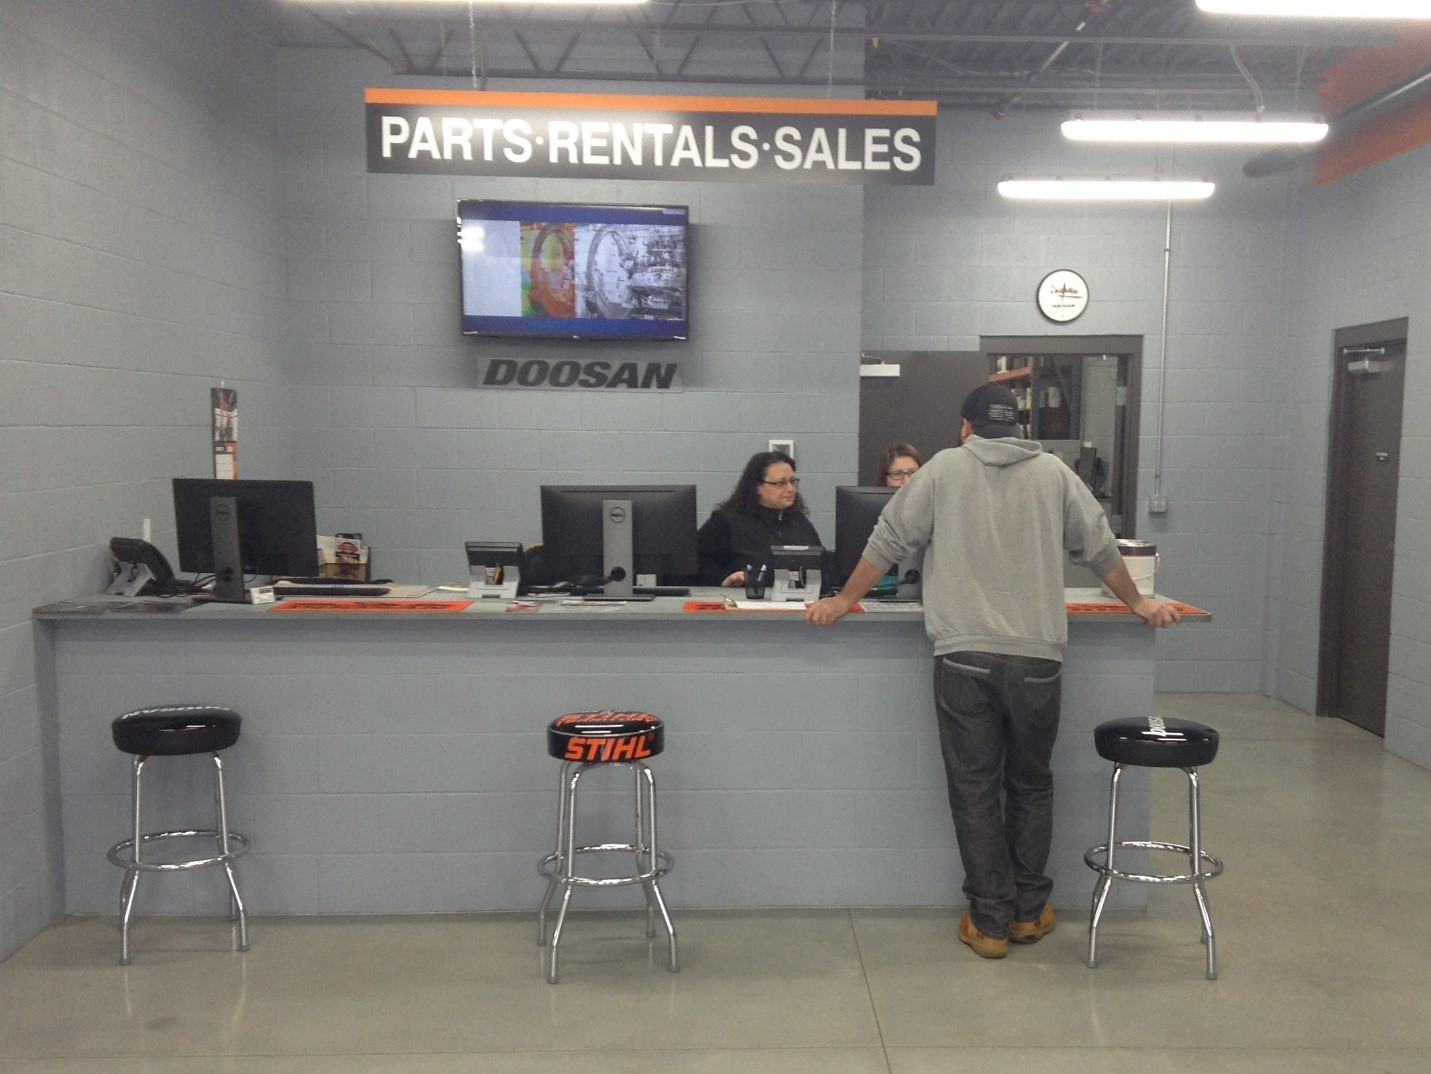 Sales, Rentals and Parts at Equipment East in Dracut, MA.